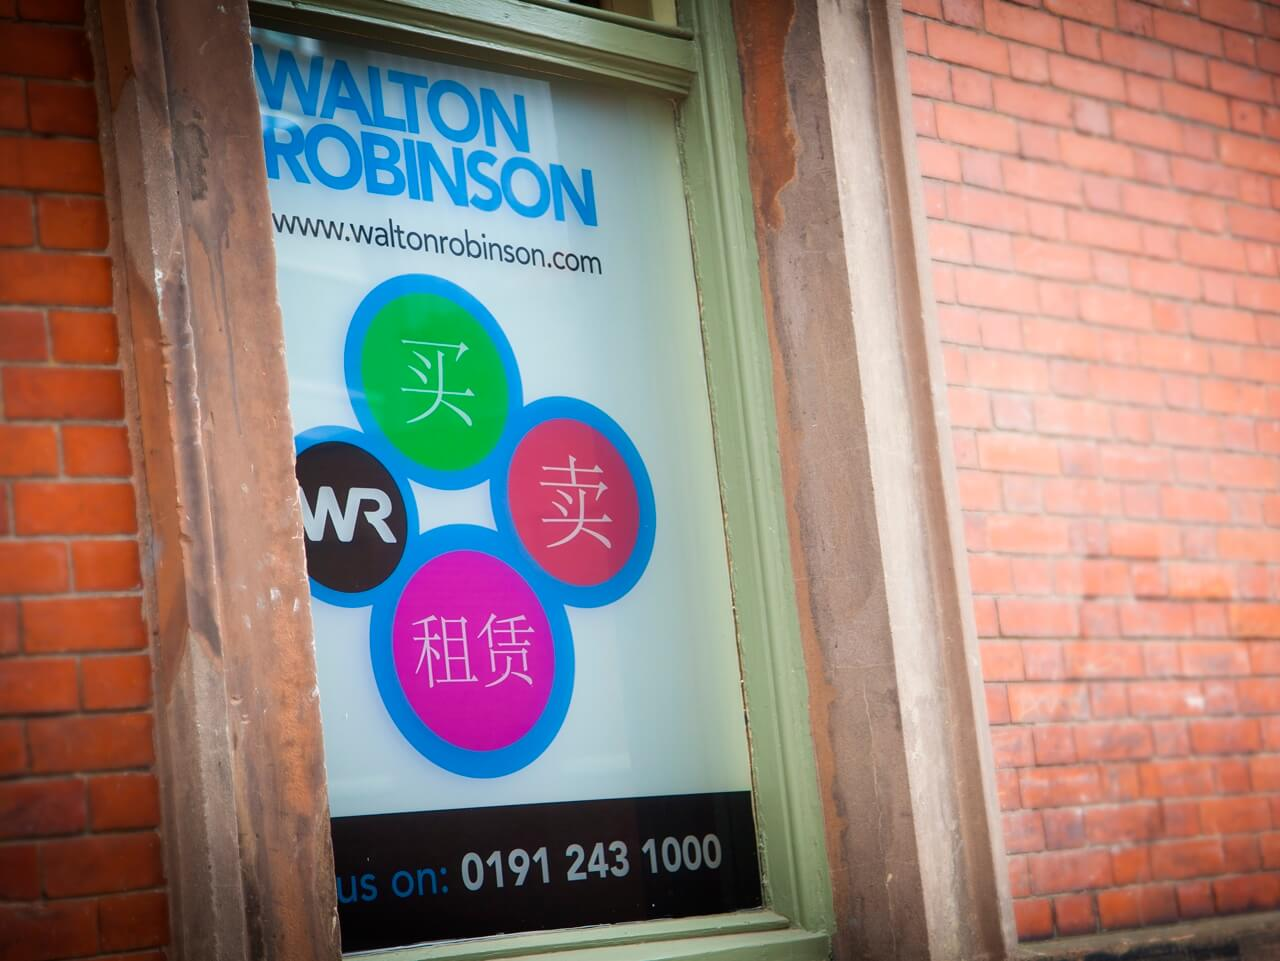 A Walton Robinson services poster in a window of the office